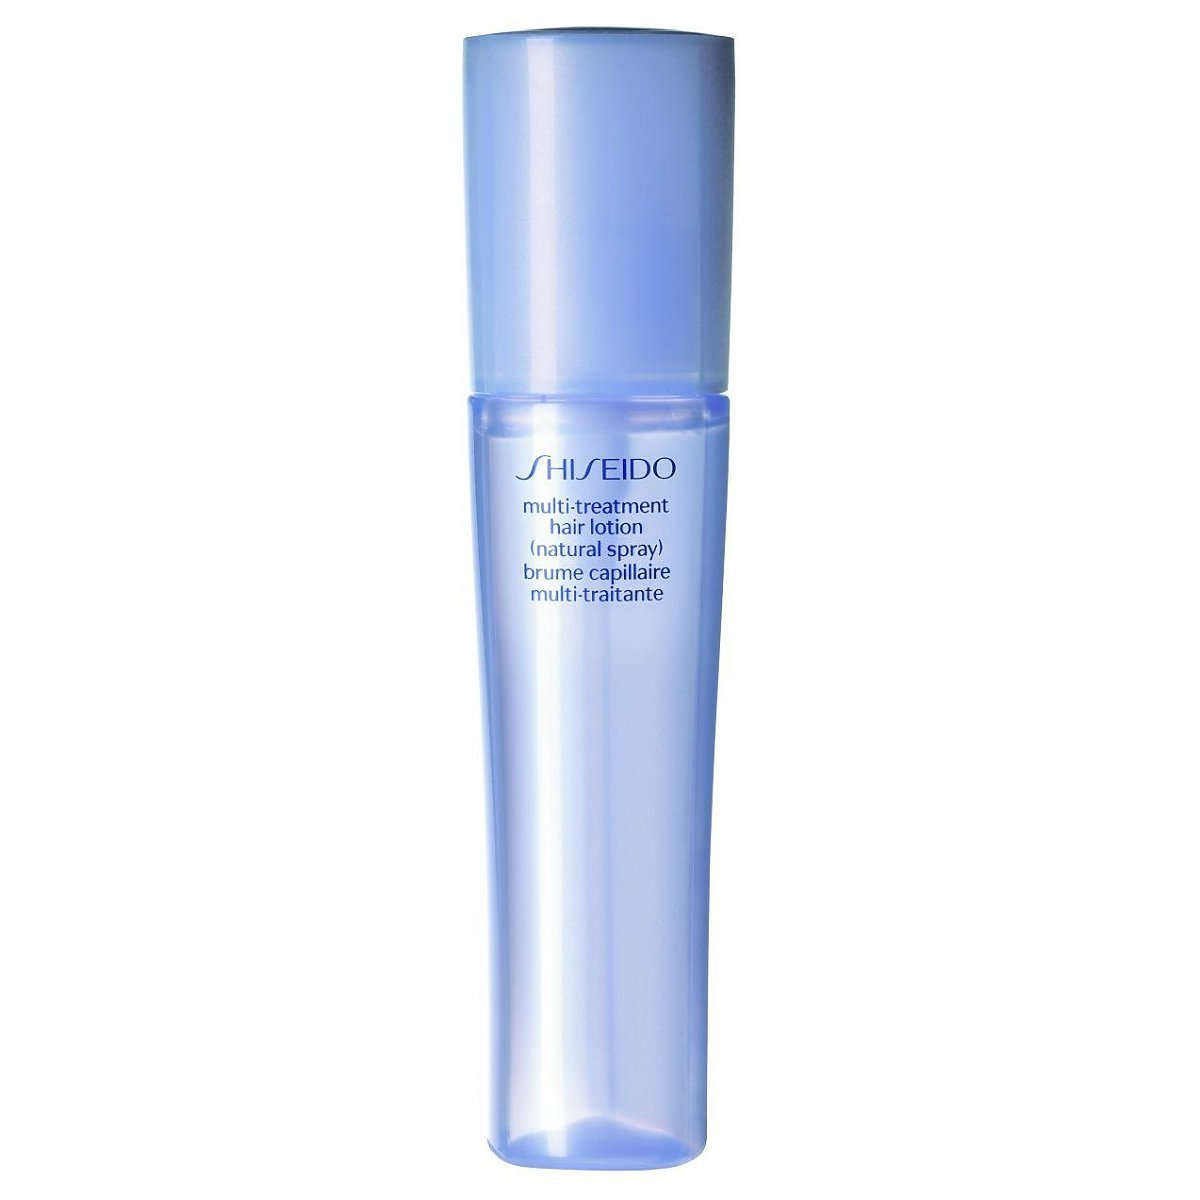 shiseido hair styling products shiseido multi treatment hair lotion spray płyn 8323